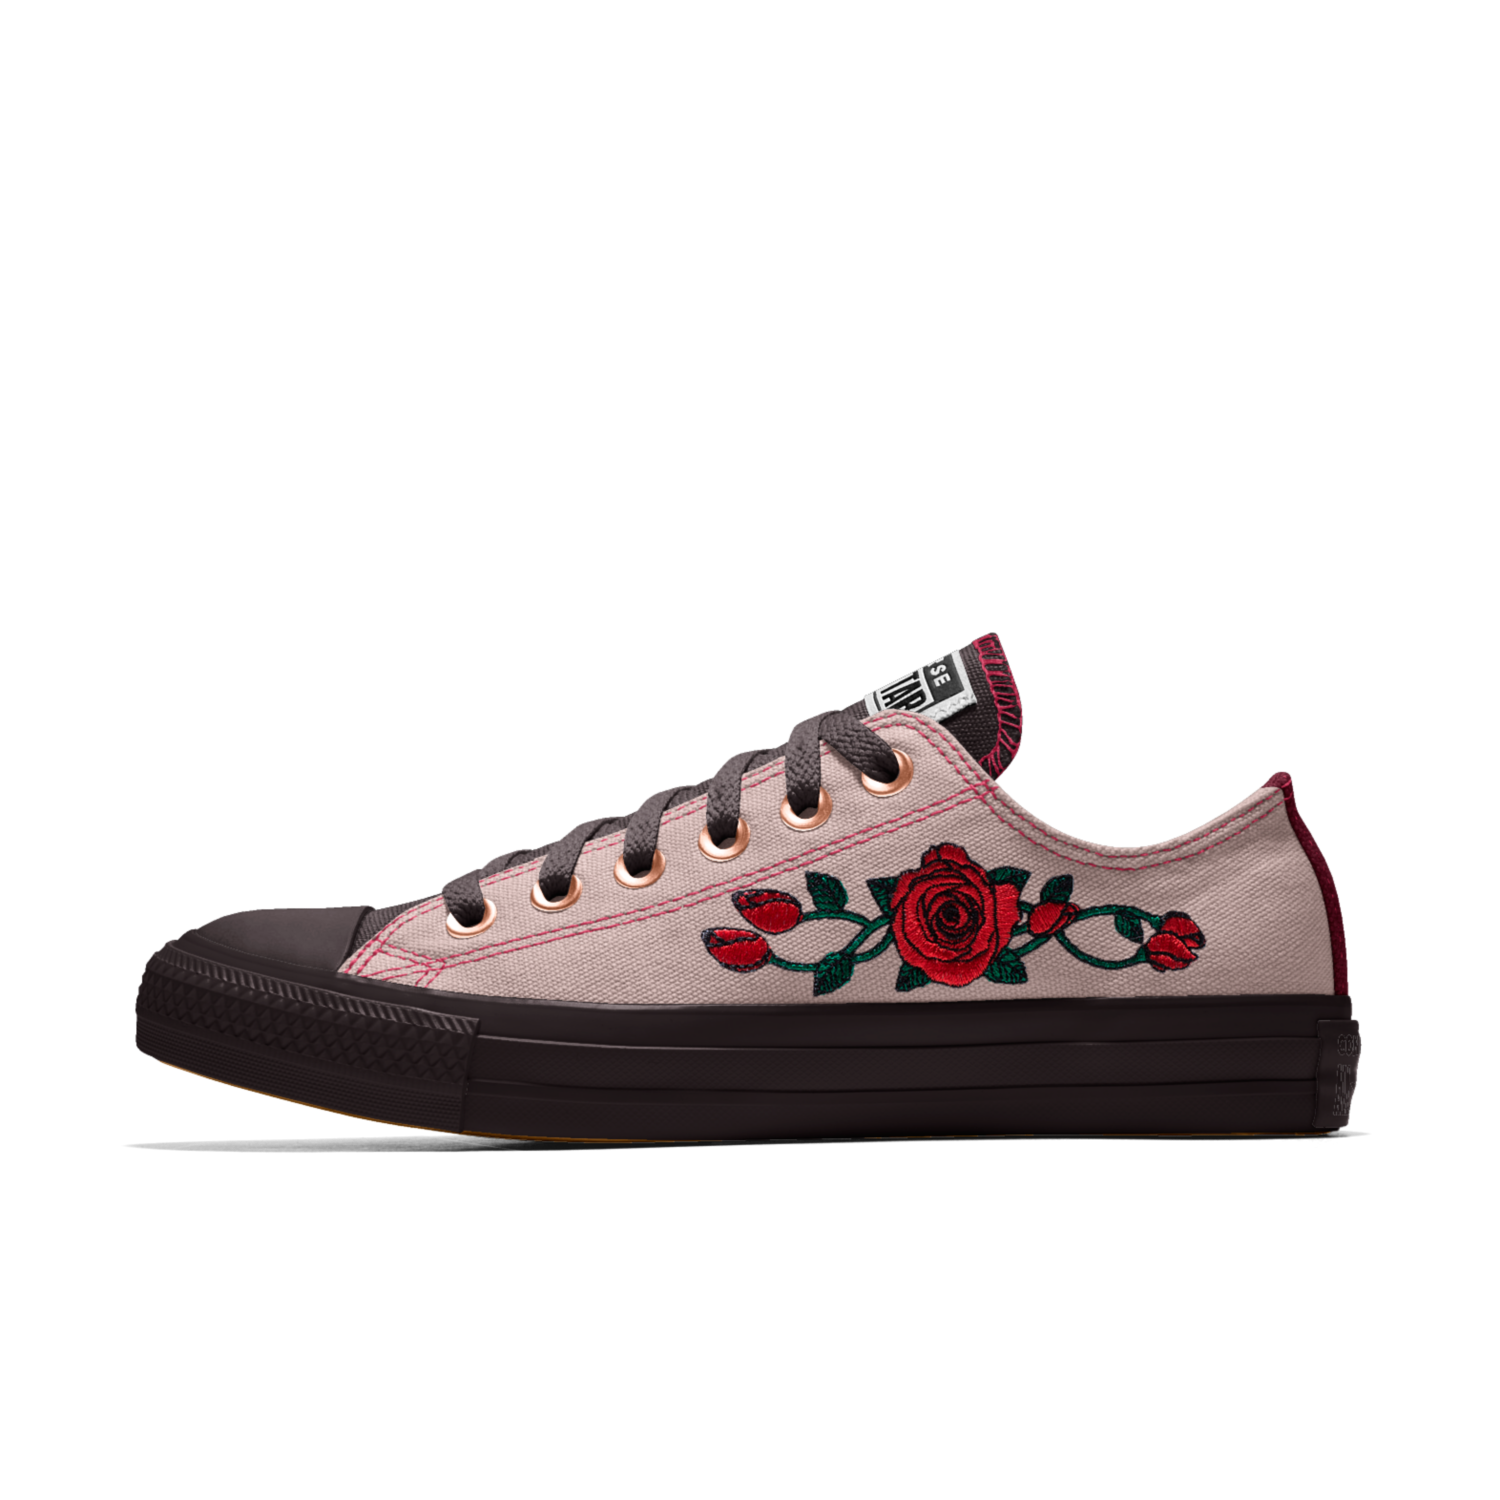 125a9837e0a19d Converse Custom Chuck Taylor All Star Rose Embroidery Low Top Shoe ...